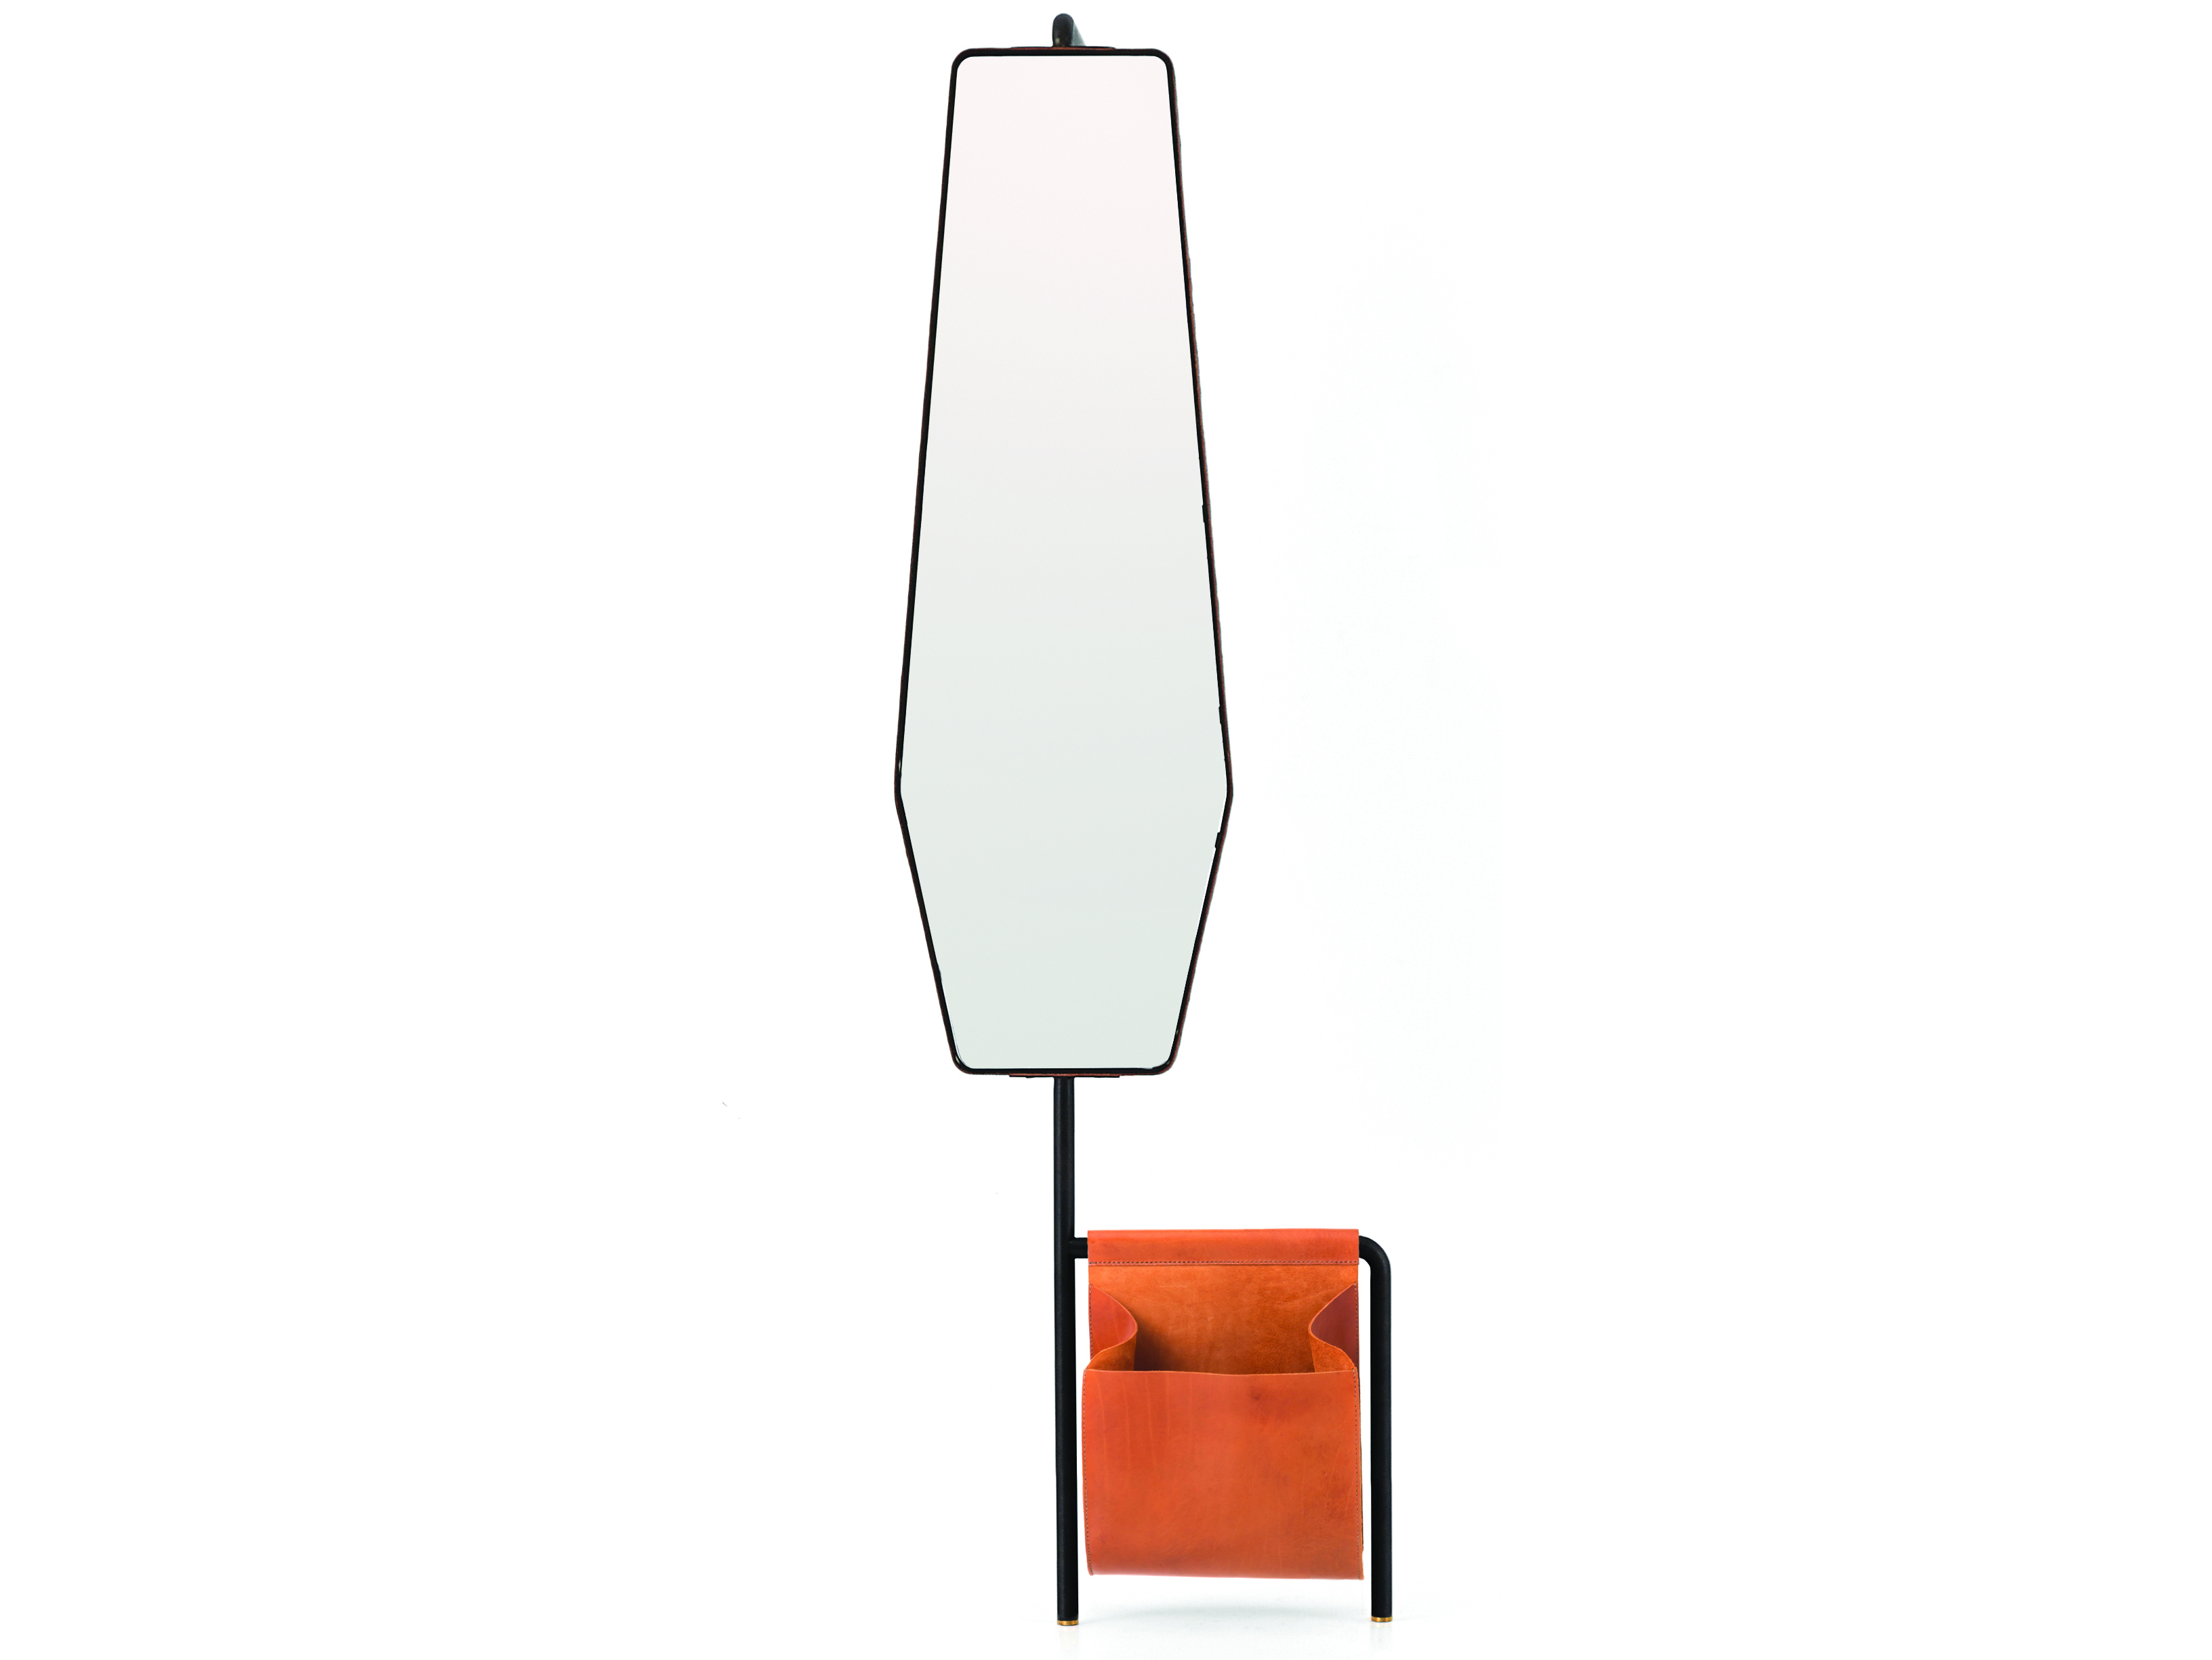 freestanding mirror valet standing mirror valet collection by ... - Specchio Free Standing Temira Sovet